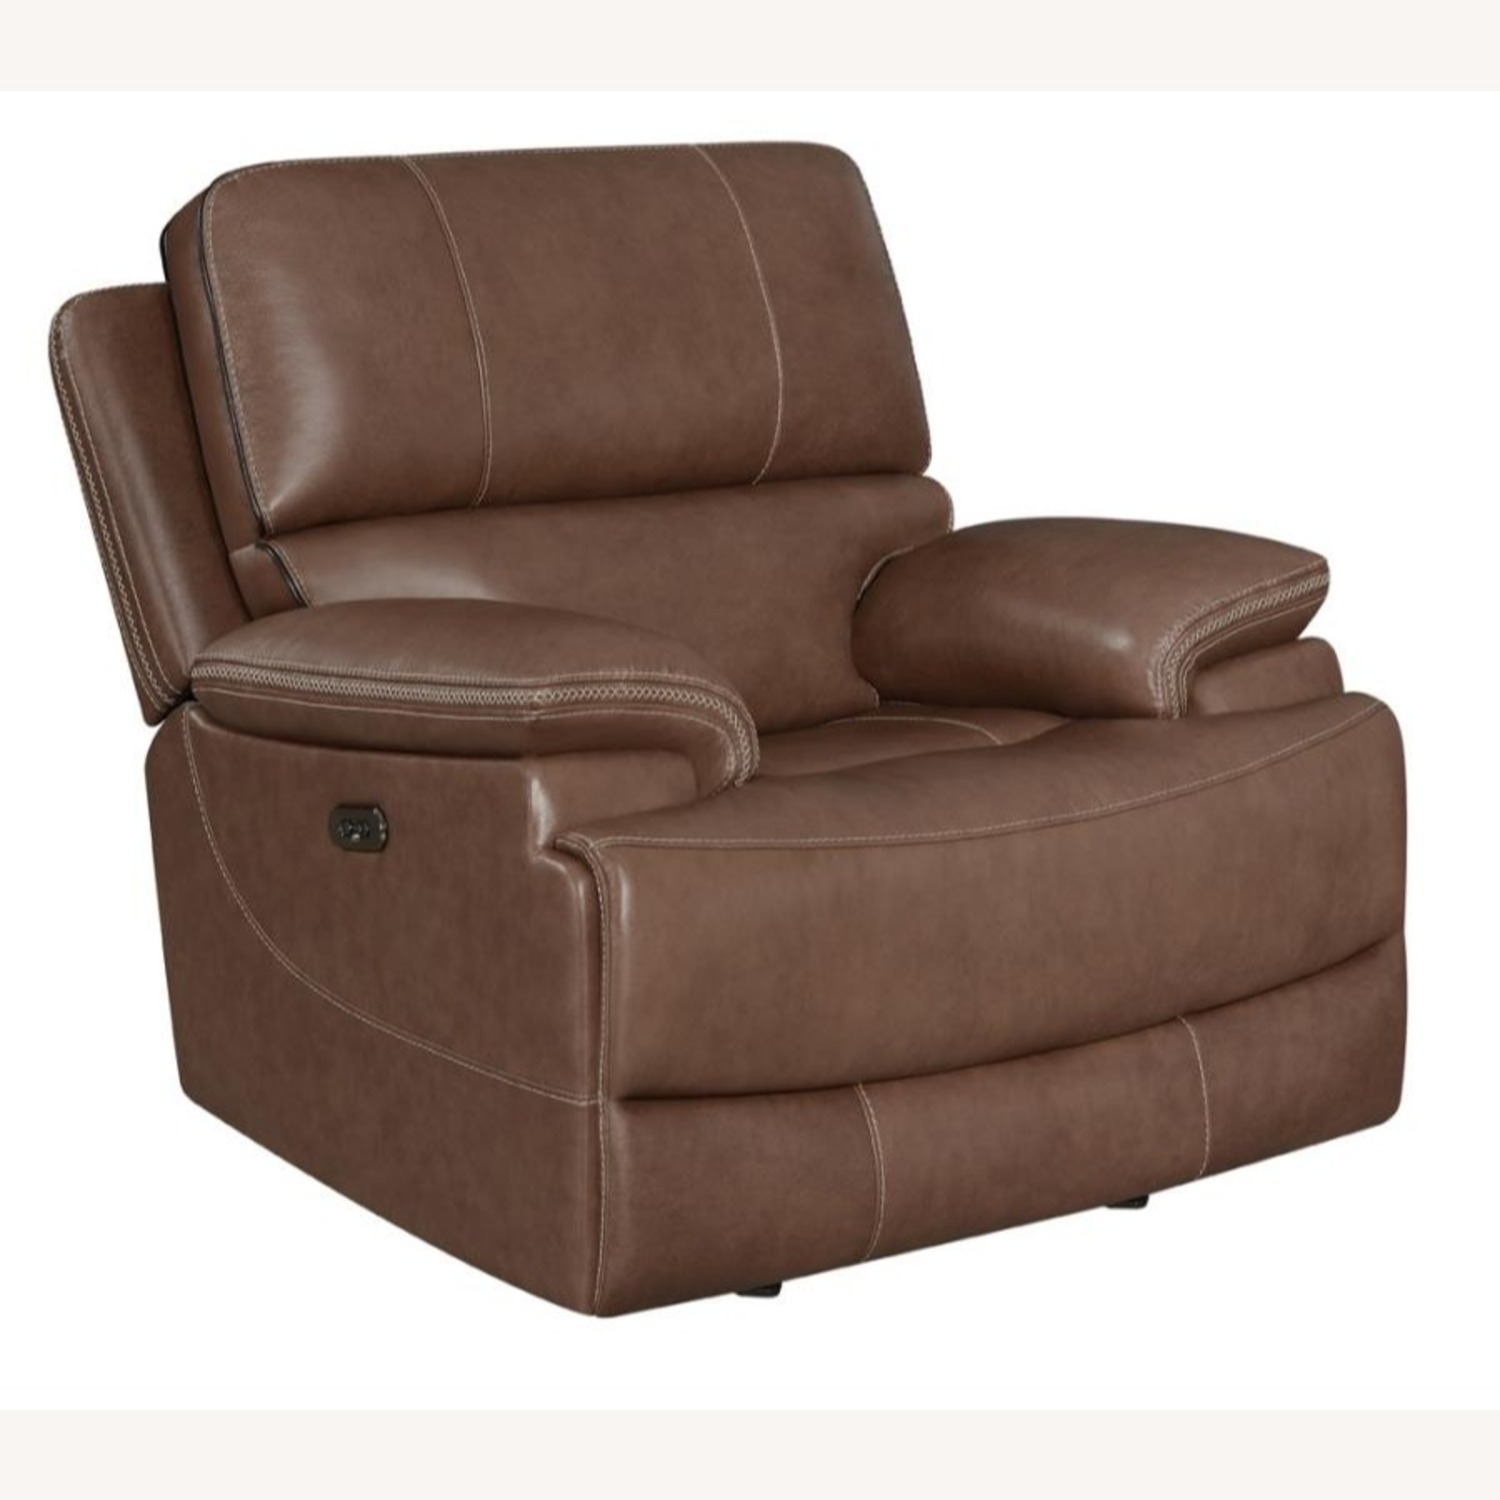 Power Recliner In Saddle Brown Leather - image-0